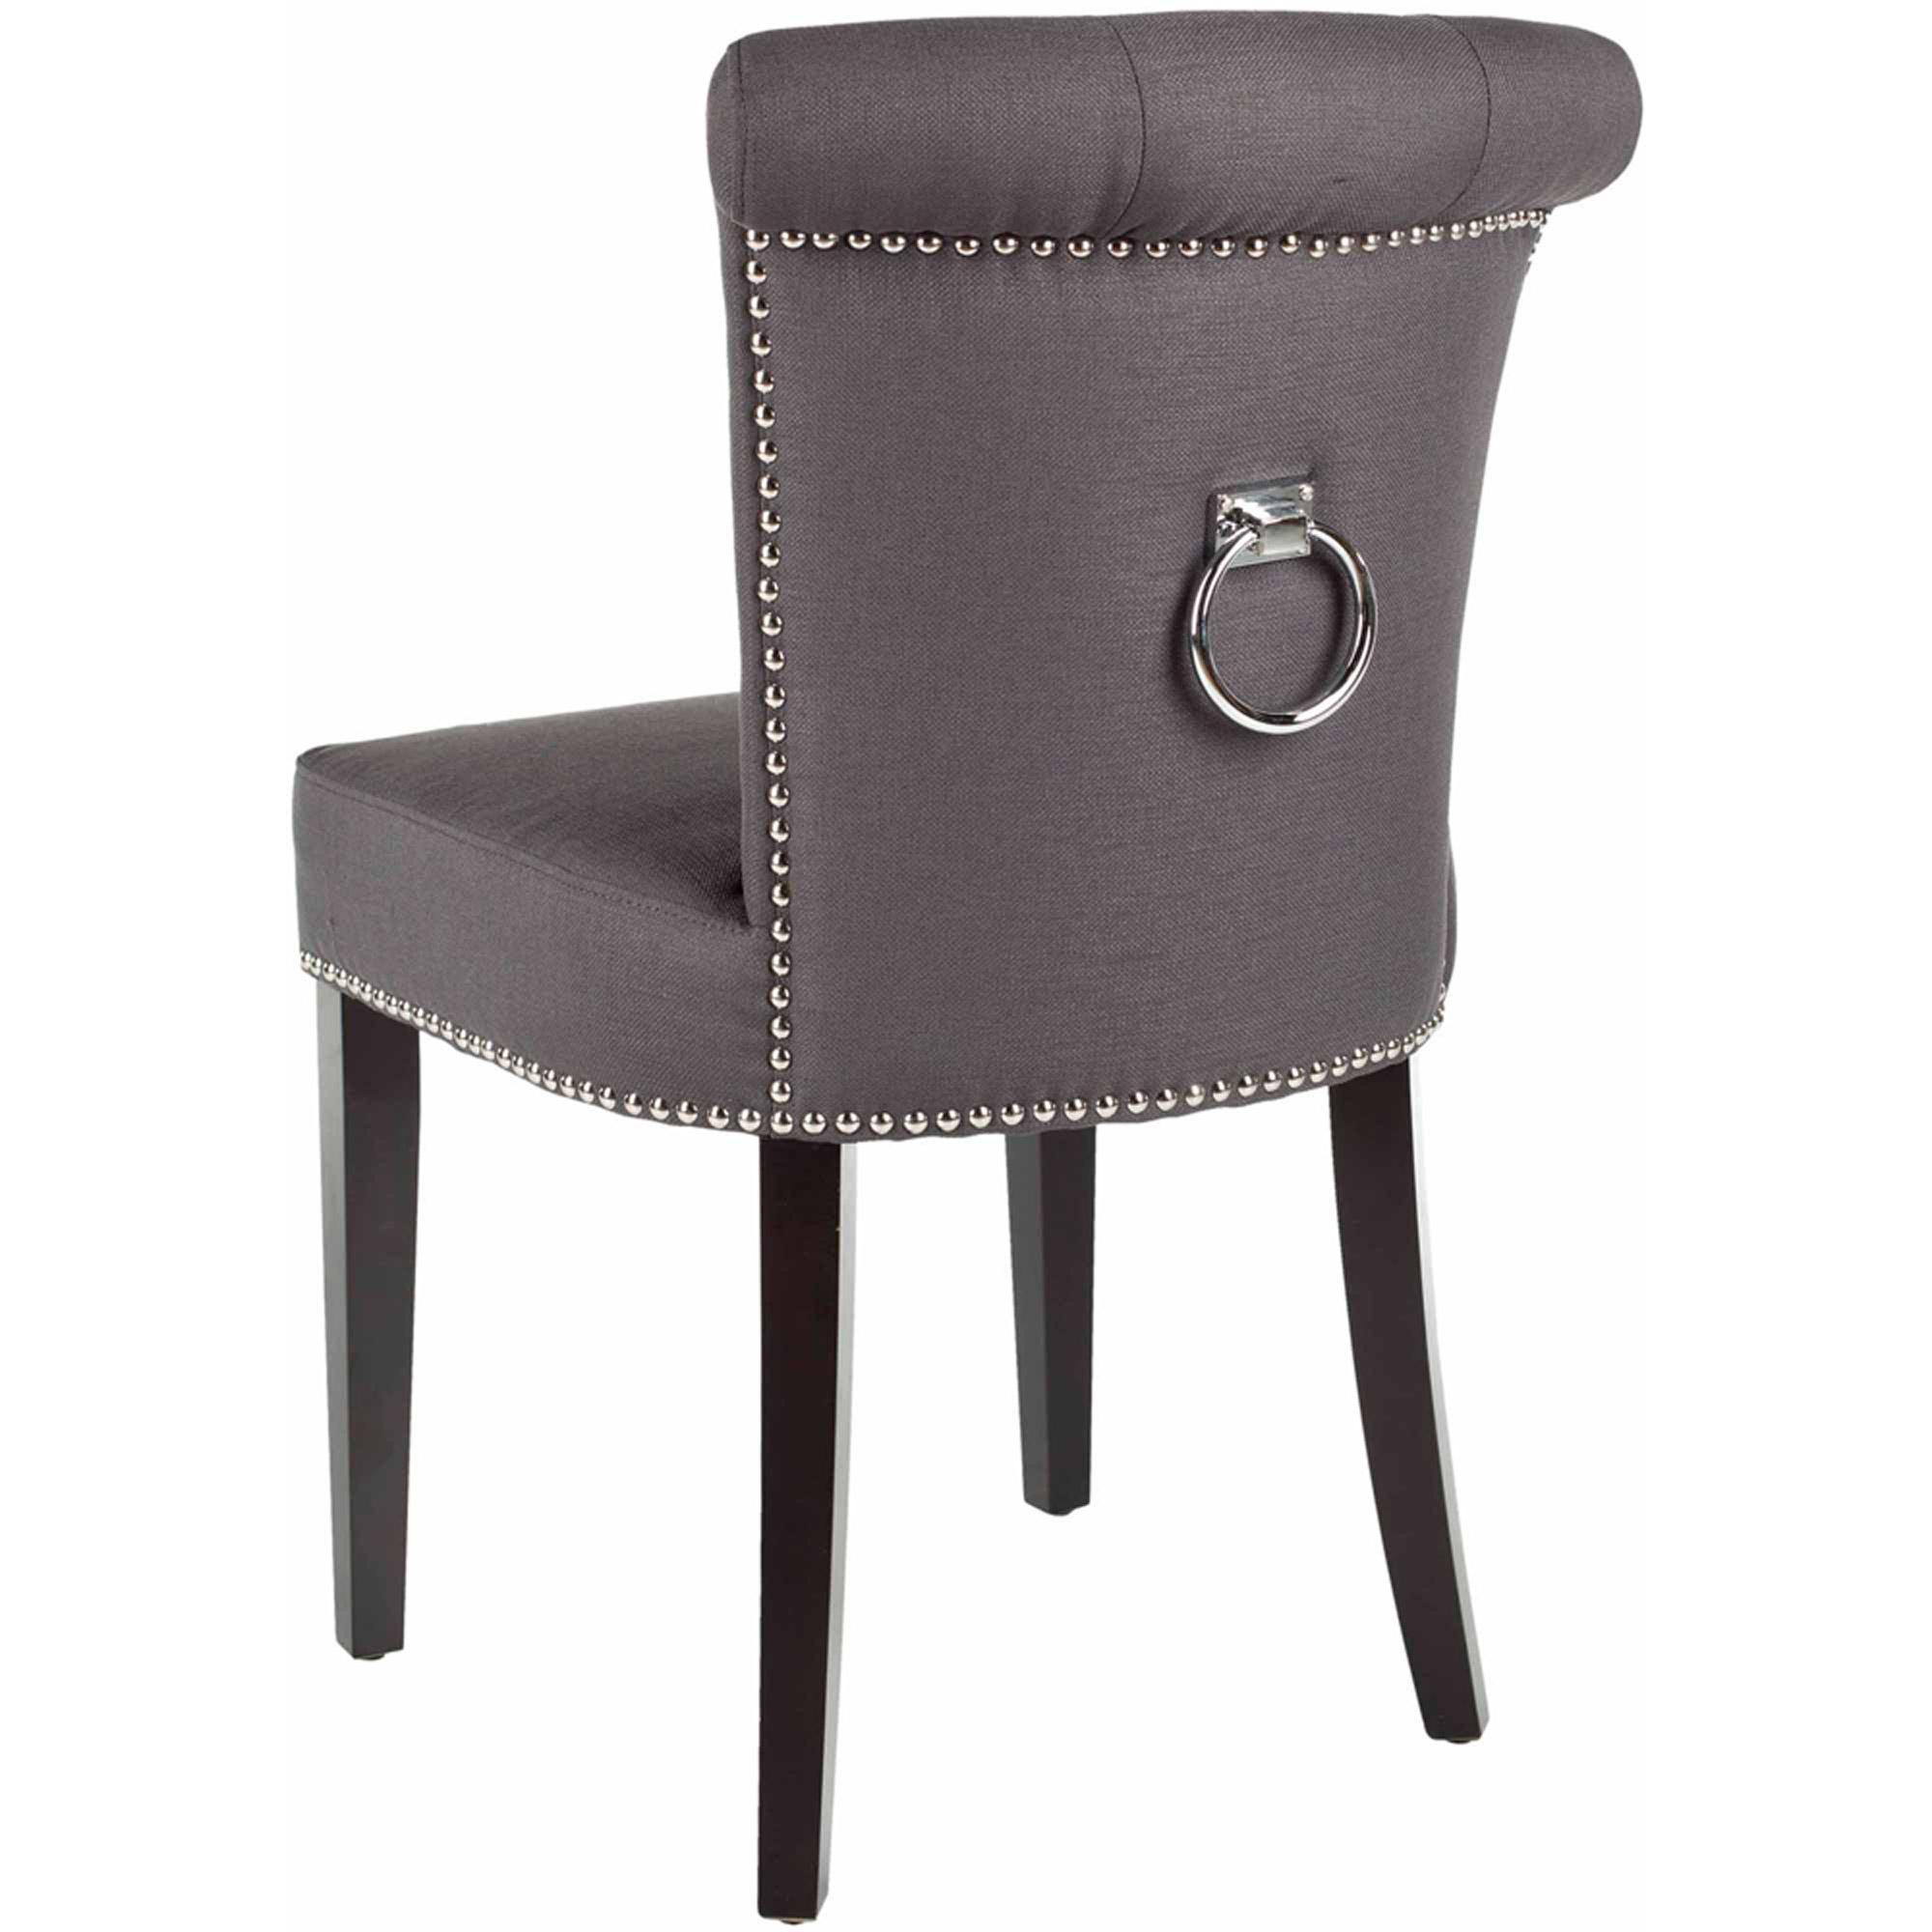 Image of: Safavieh Dining Chairs with Rings on Back